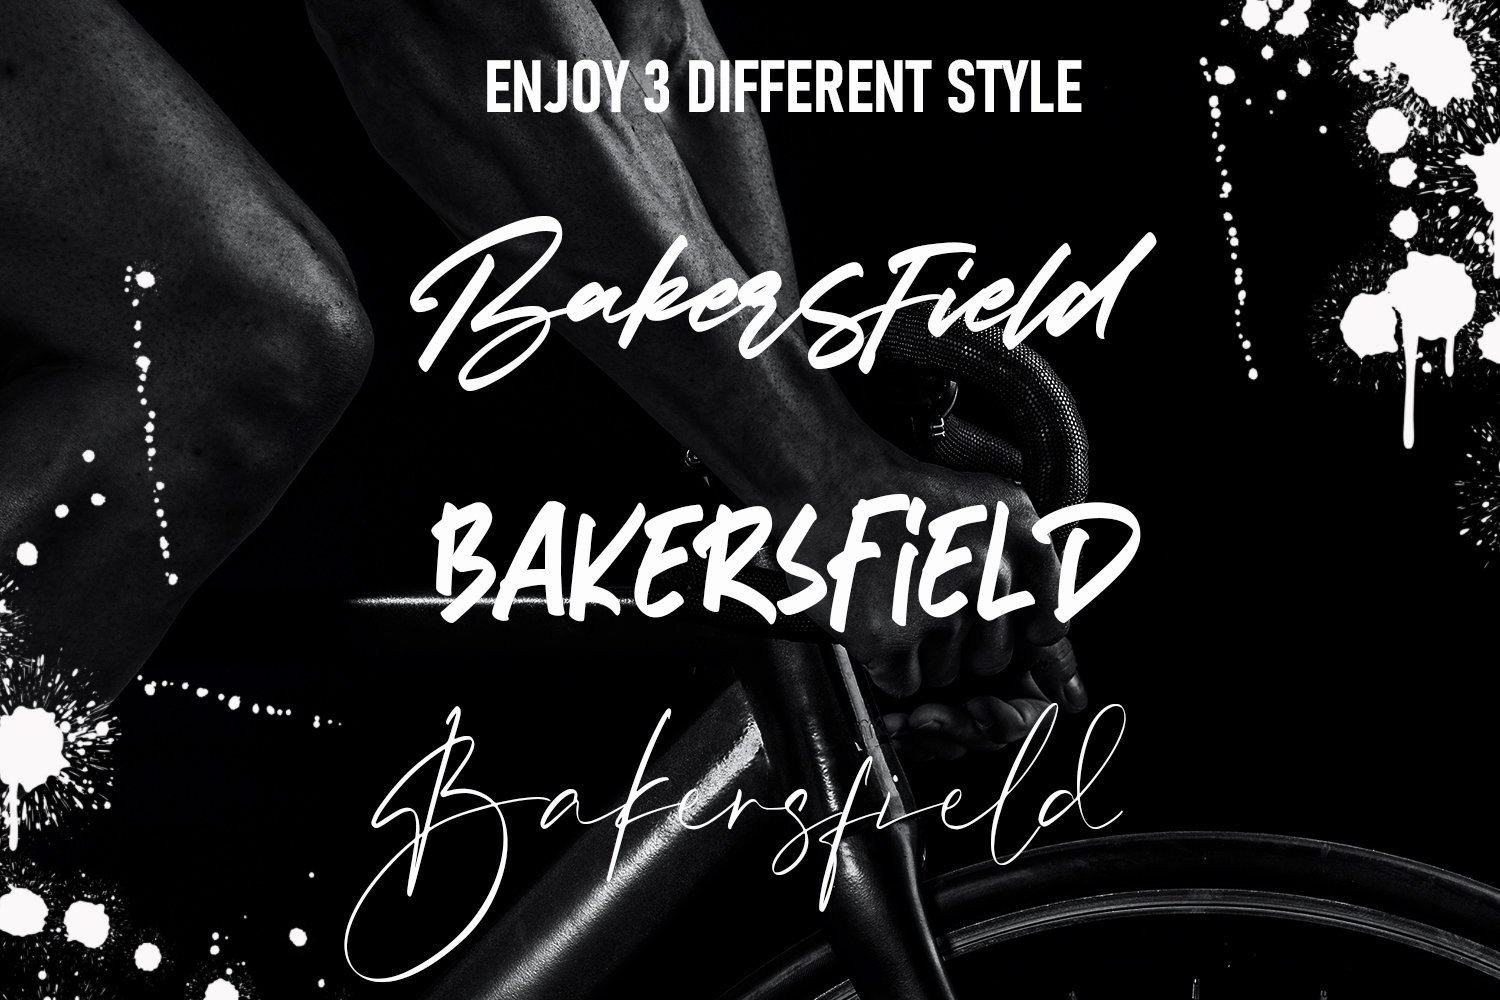 Bakersfield | 3 Font Combination example image 5